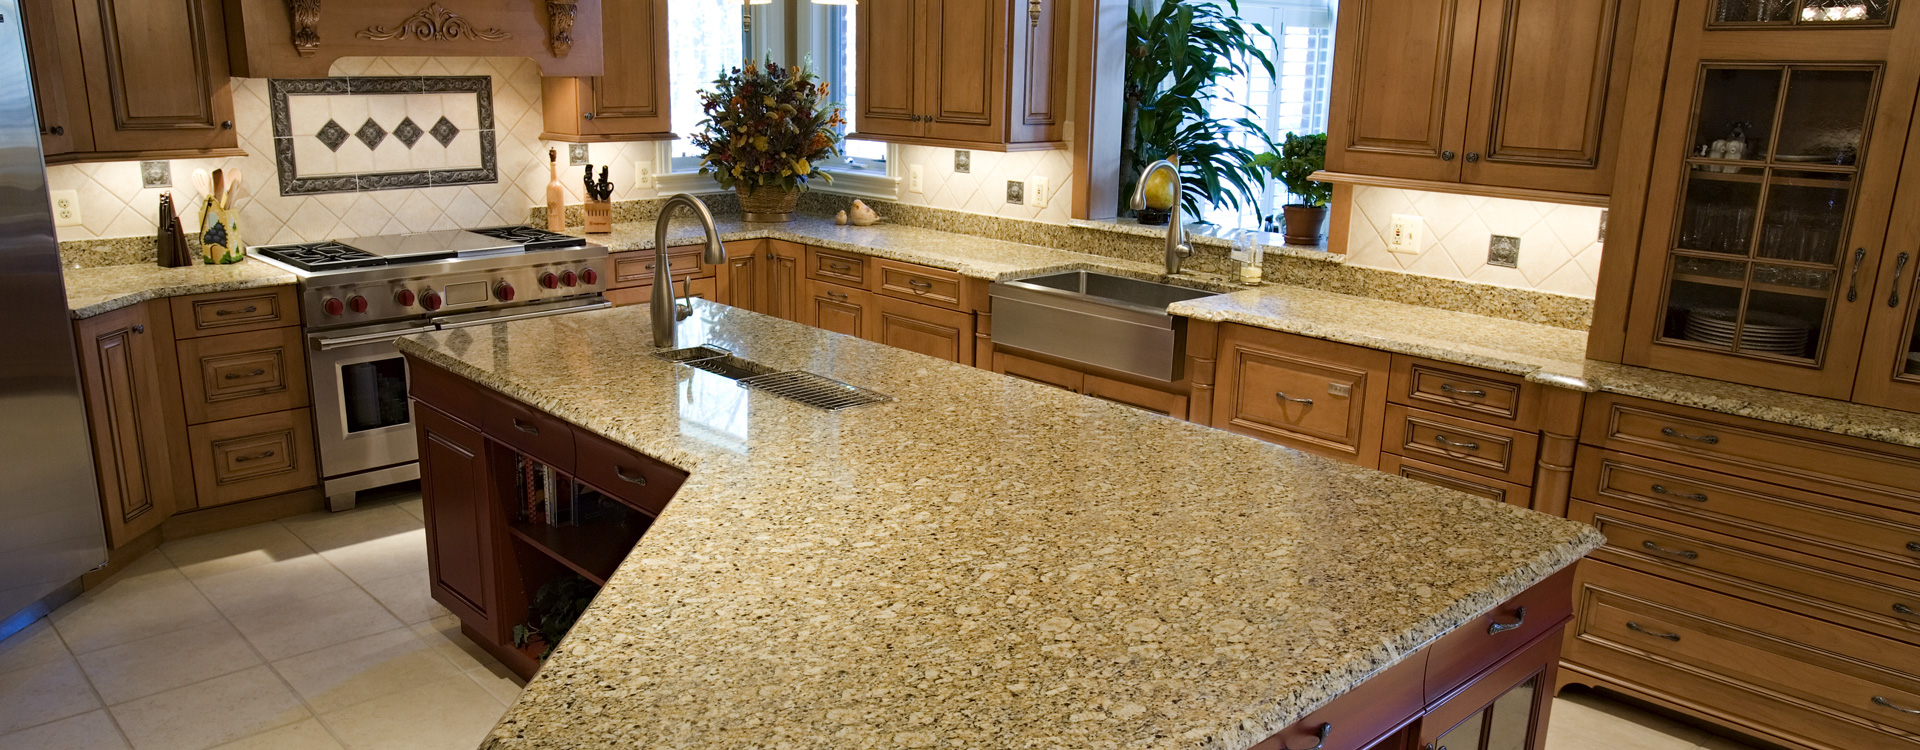 Granite Countertops | A&S Home Interiors